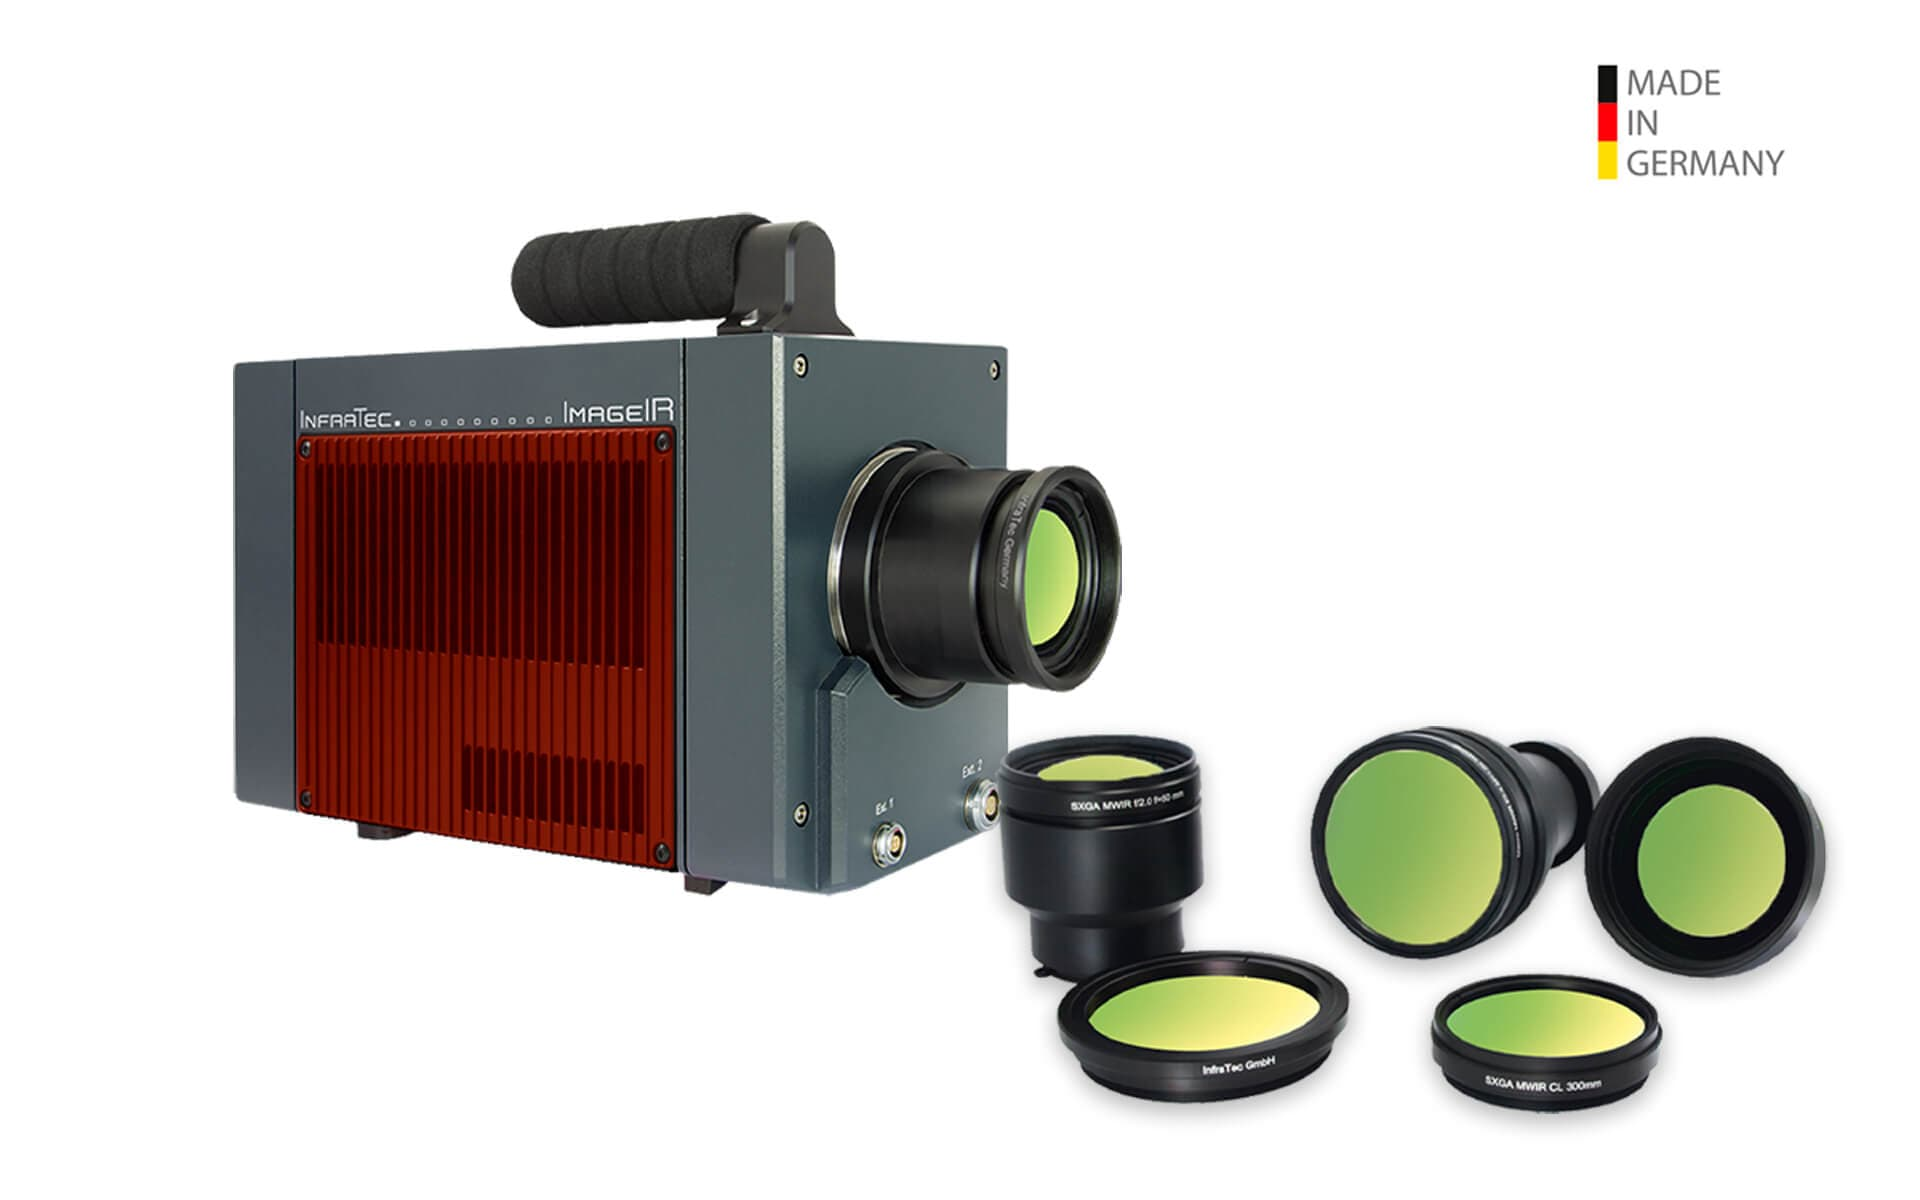 Infrared camera ImageIR® 9400 hp from InfraTec